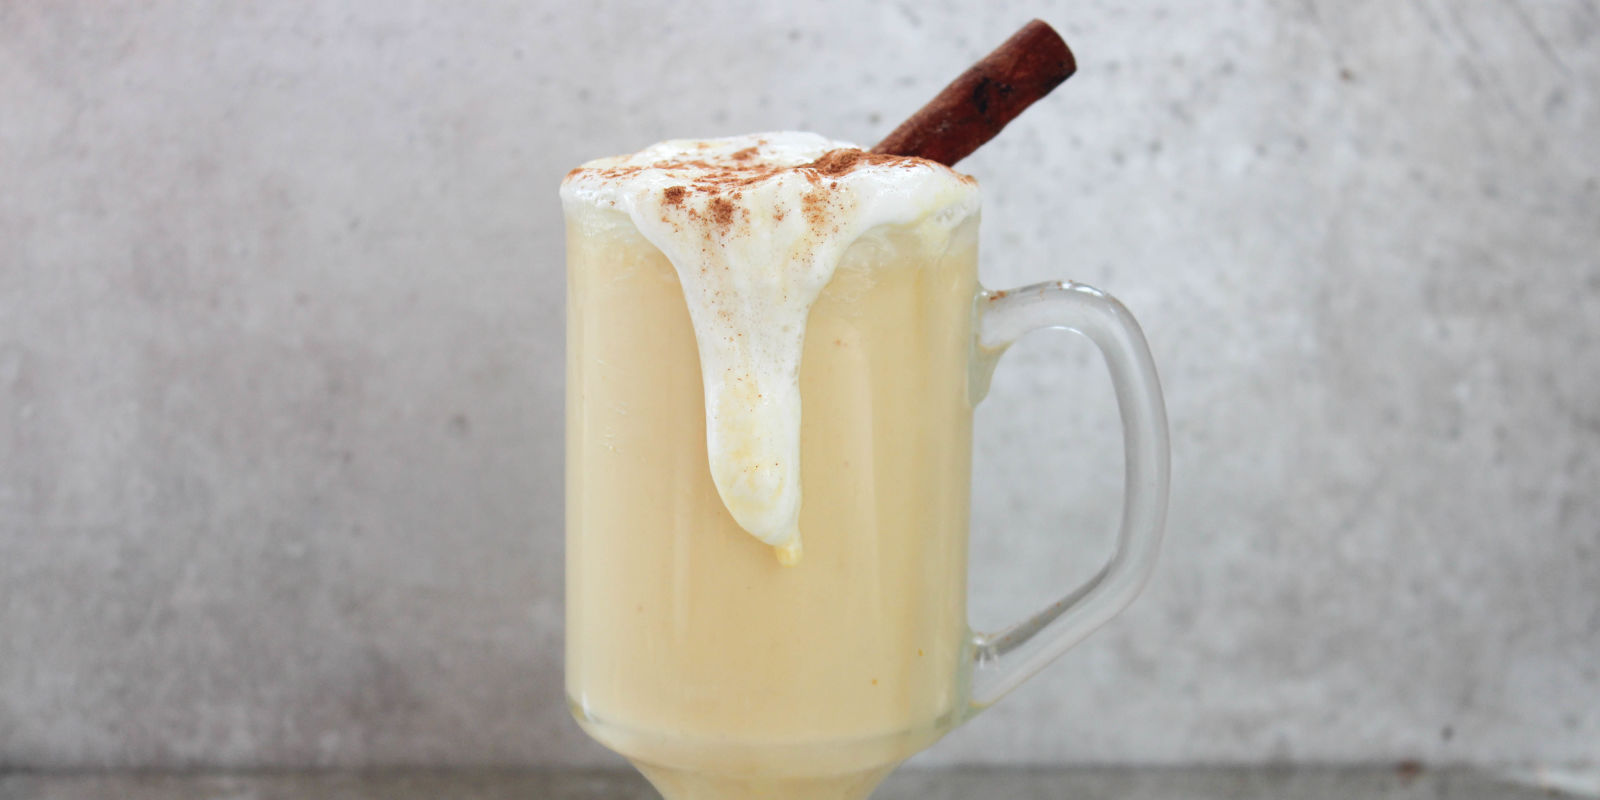 Spice Eggnog White Hot Chocolate Recipe-How to Make Pumpkin Spice ...